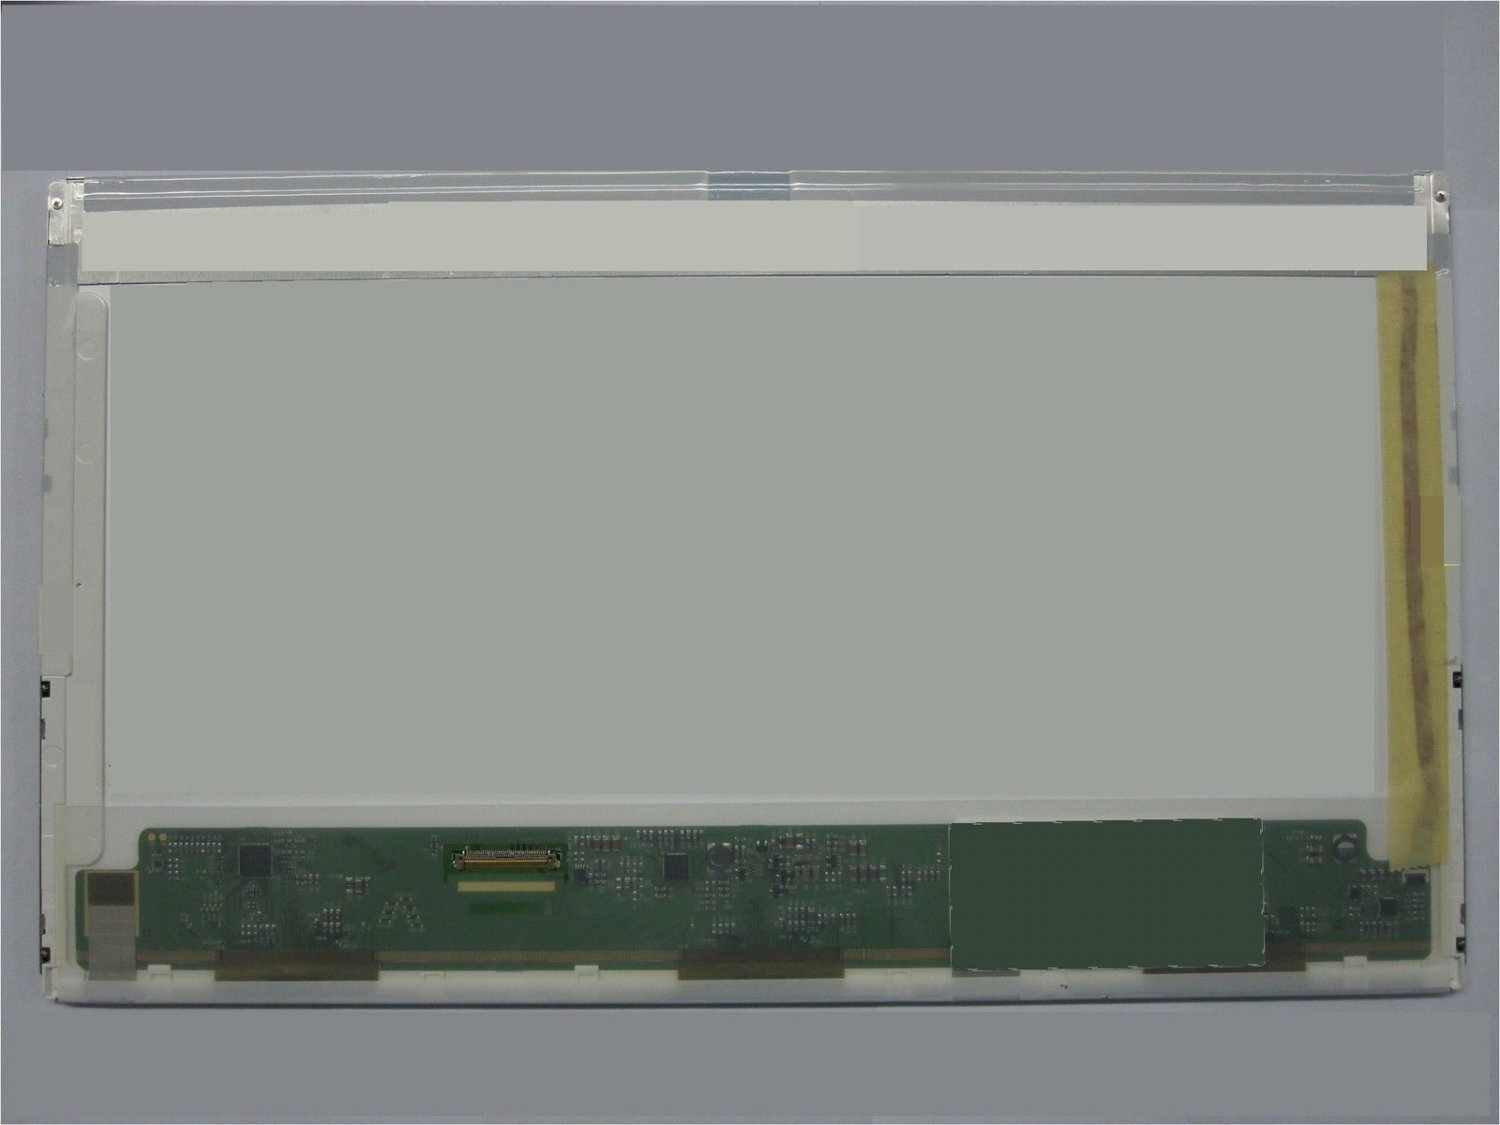 OEM Lcd Screen For Toshiba Satellite Laptop C855-S5630 15.6